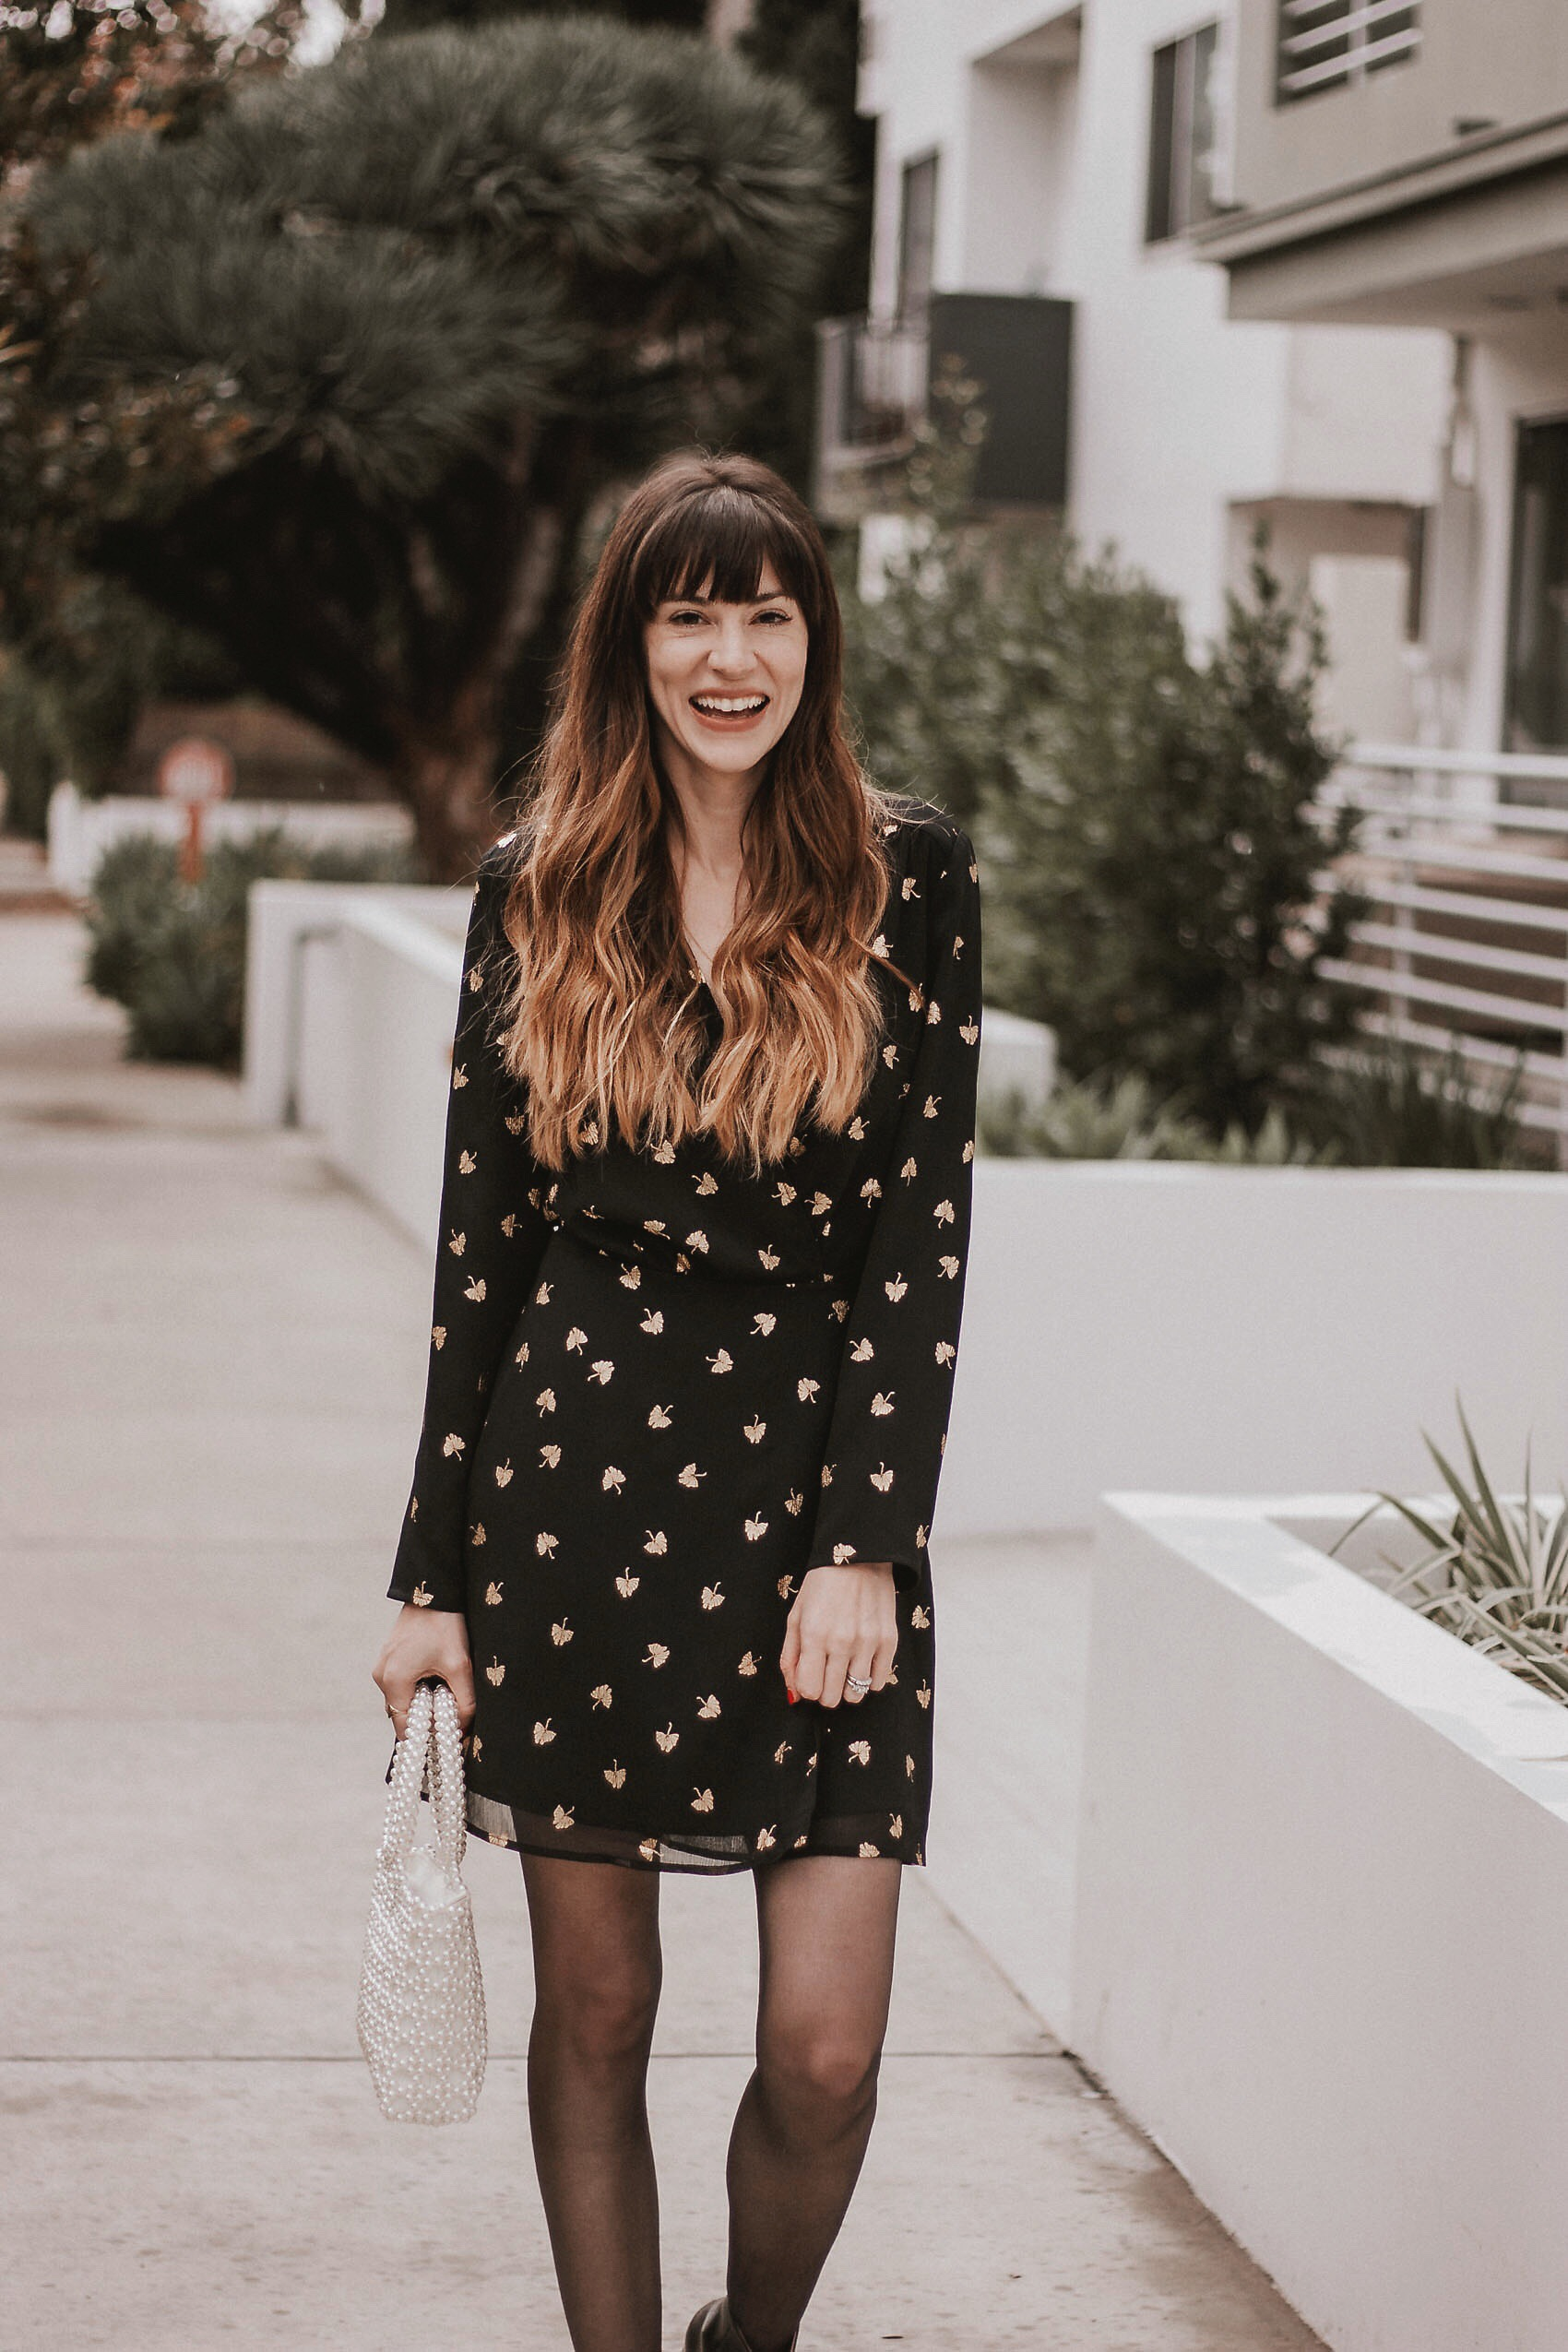 Holiday Outfit Inspiration, Black Wrap Dress with Gold Details